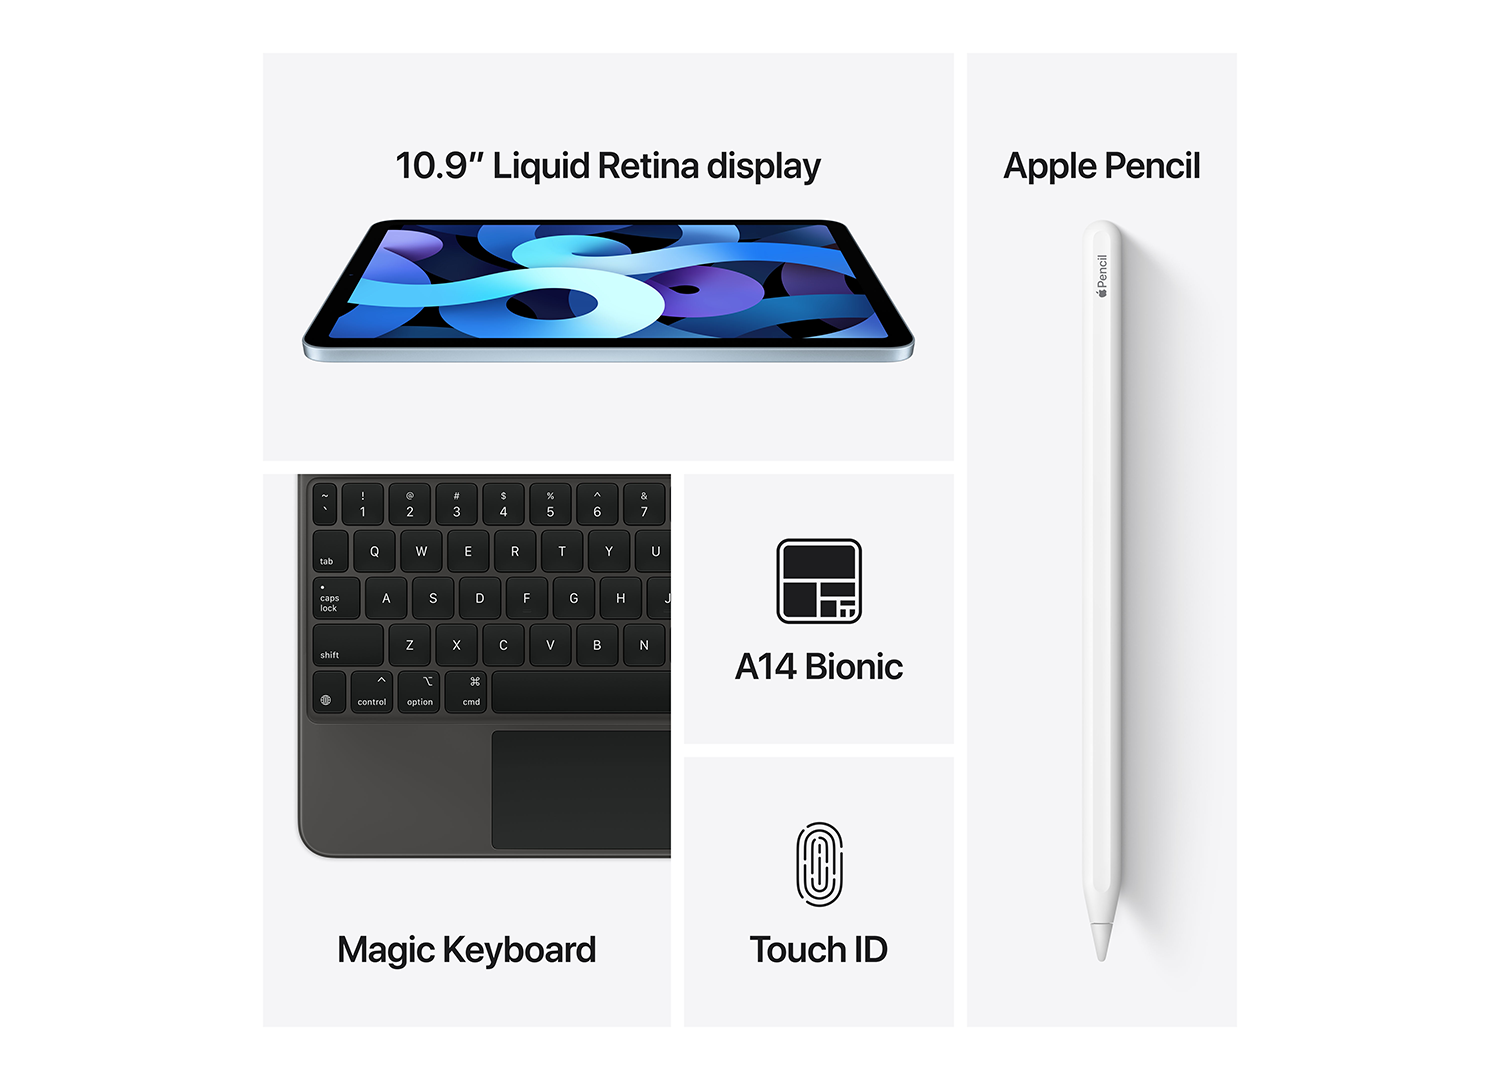 iPad-air-4-features-graphic.png